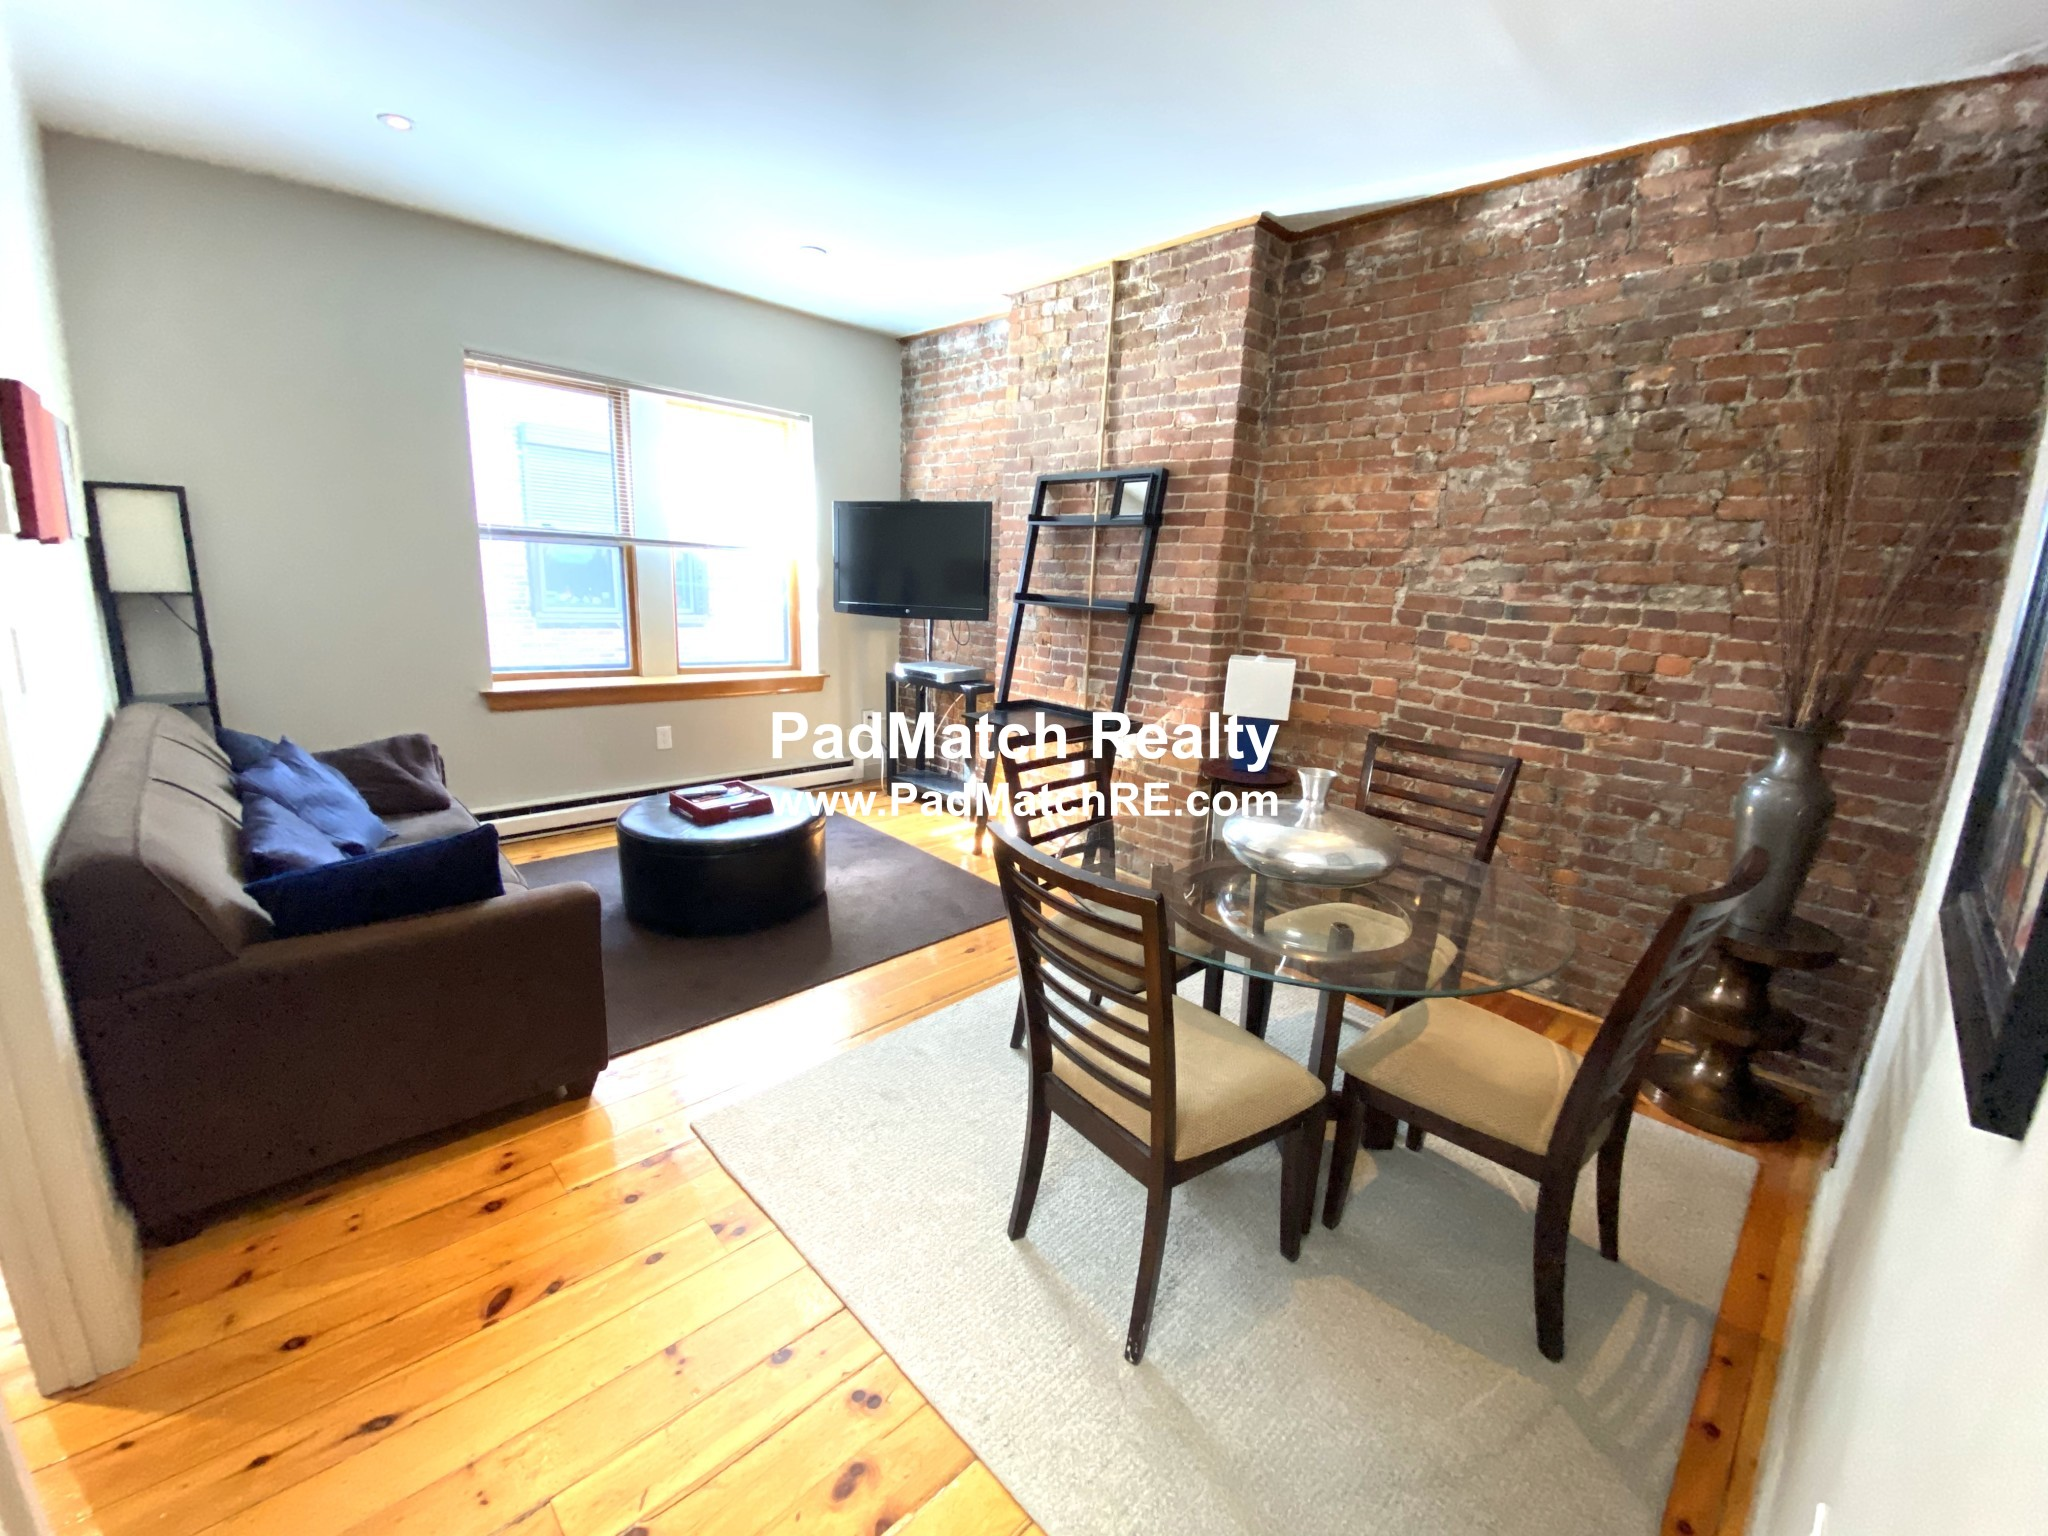 Back Bay 1 bedroom near the Pru! Available now